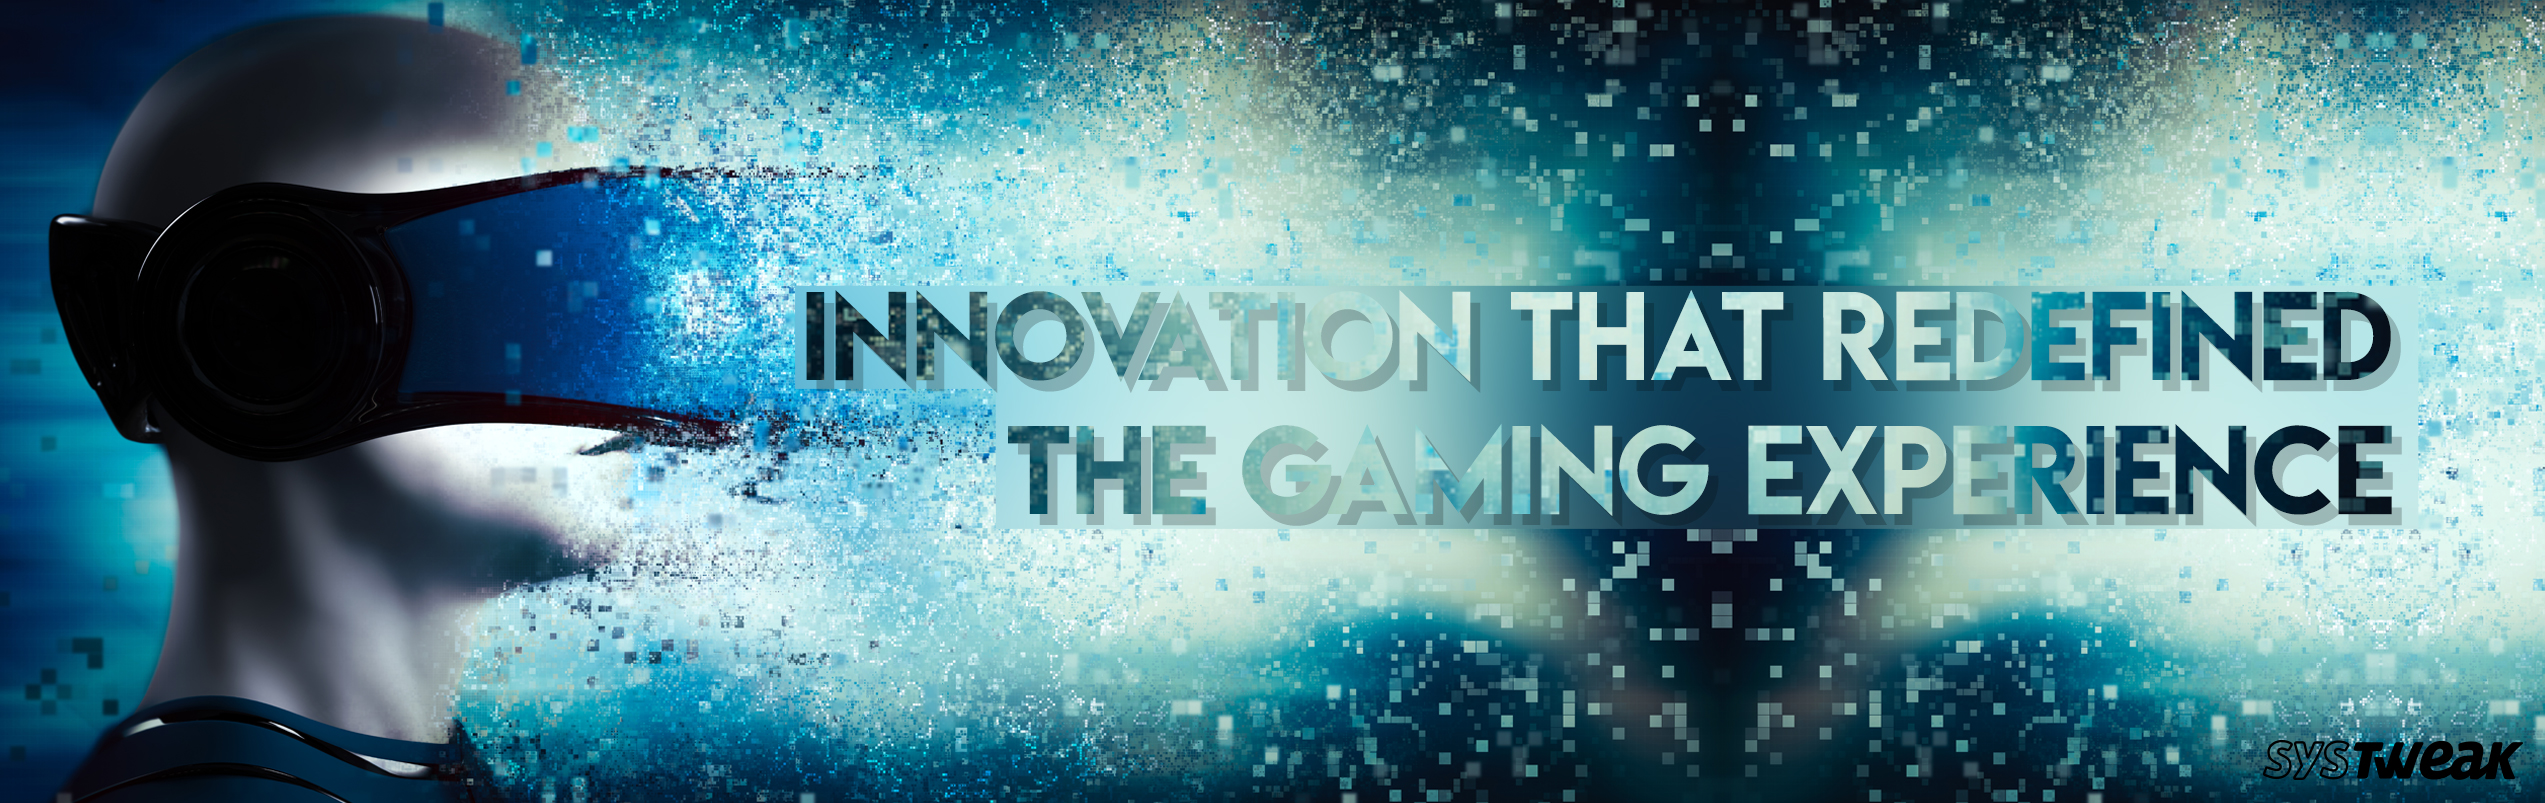 Innovations That Redefined The Gaming Experience And Industry